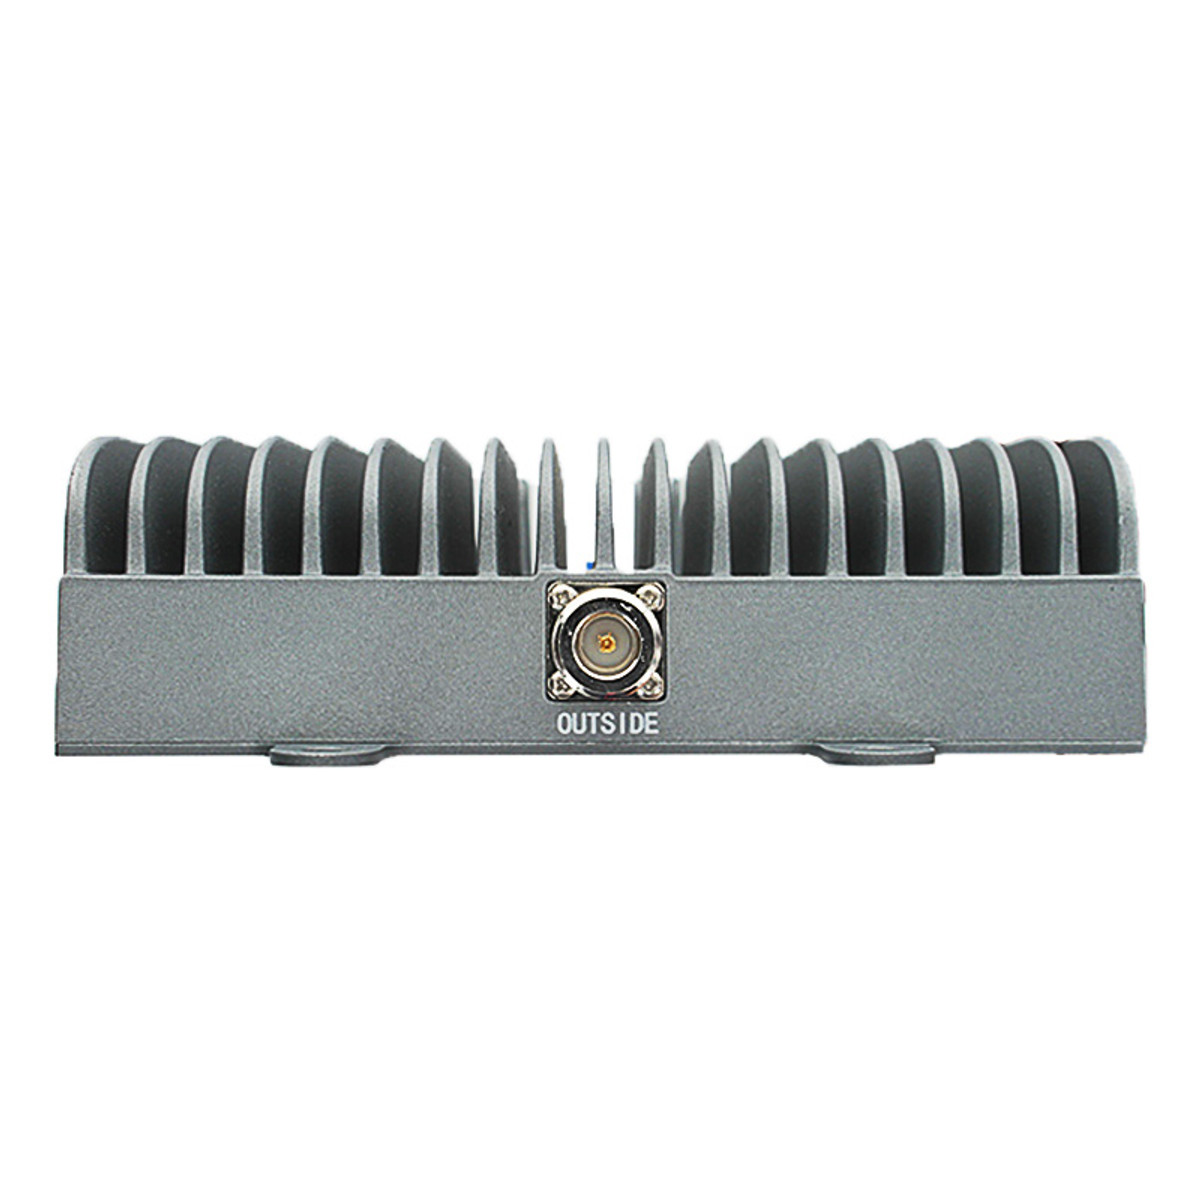 SureCall Fusion5S Signal Booster with Inside & Outside Antennas (SC-PolyH/OS-72-OD-KIT) | Bottom View